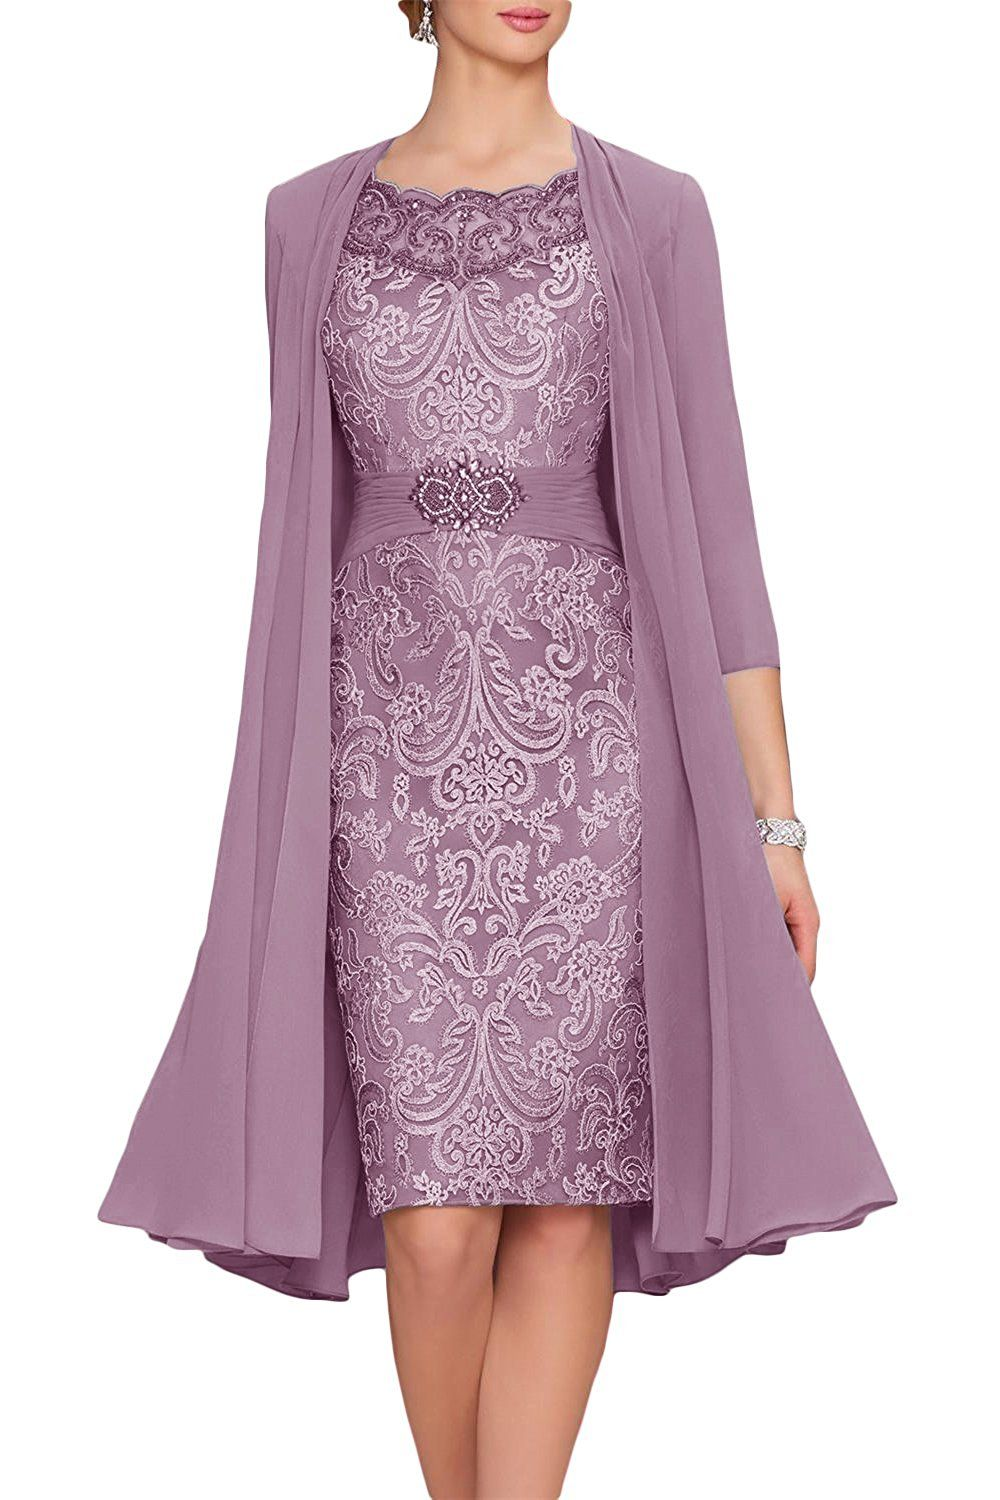 the latest 2875a 42cec Newdeve Chiffon Mother Of The Bride Dresses Tea Length Two ...